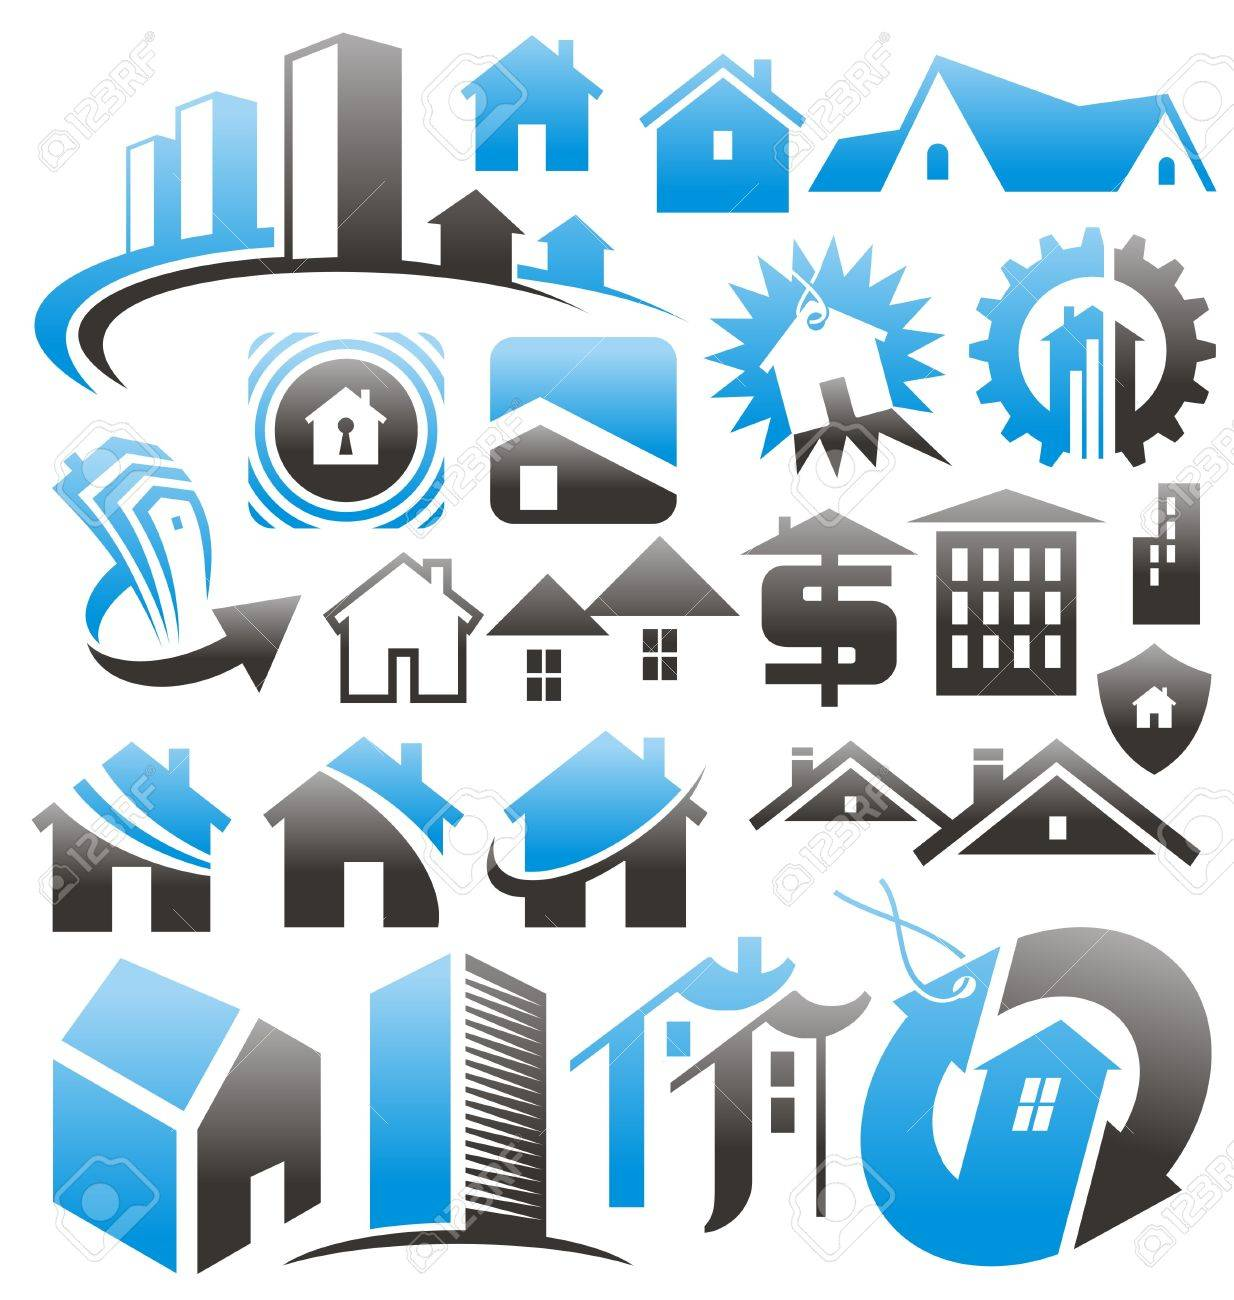 Set of house icons, symbols and signs Stock Vector - 17999072